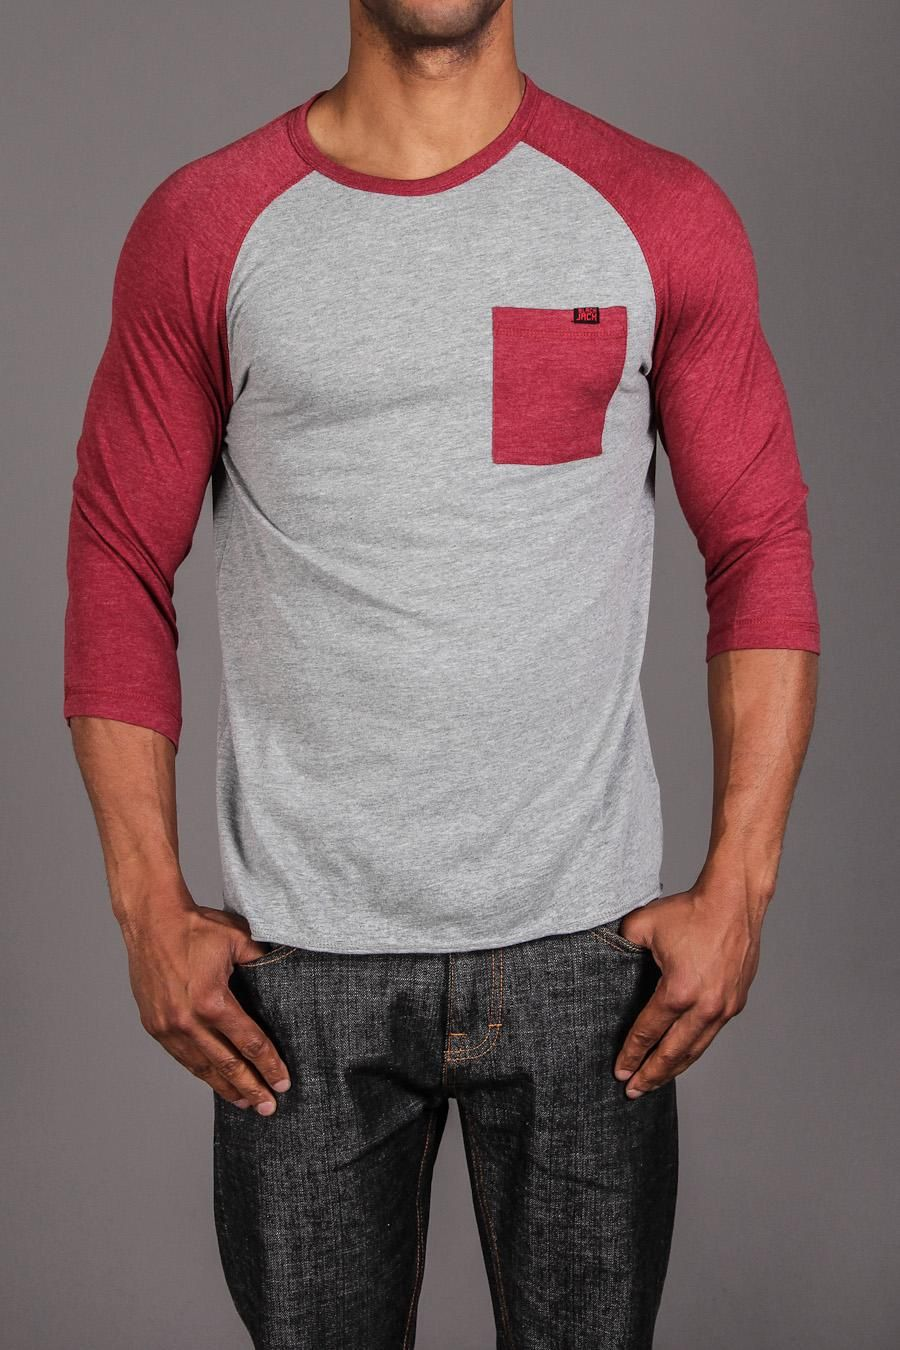 24 Best Men S Casual Outfits Vintagetopia: Red / Grey Top (With Images)